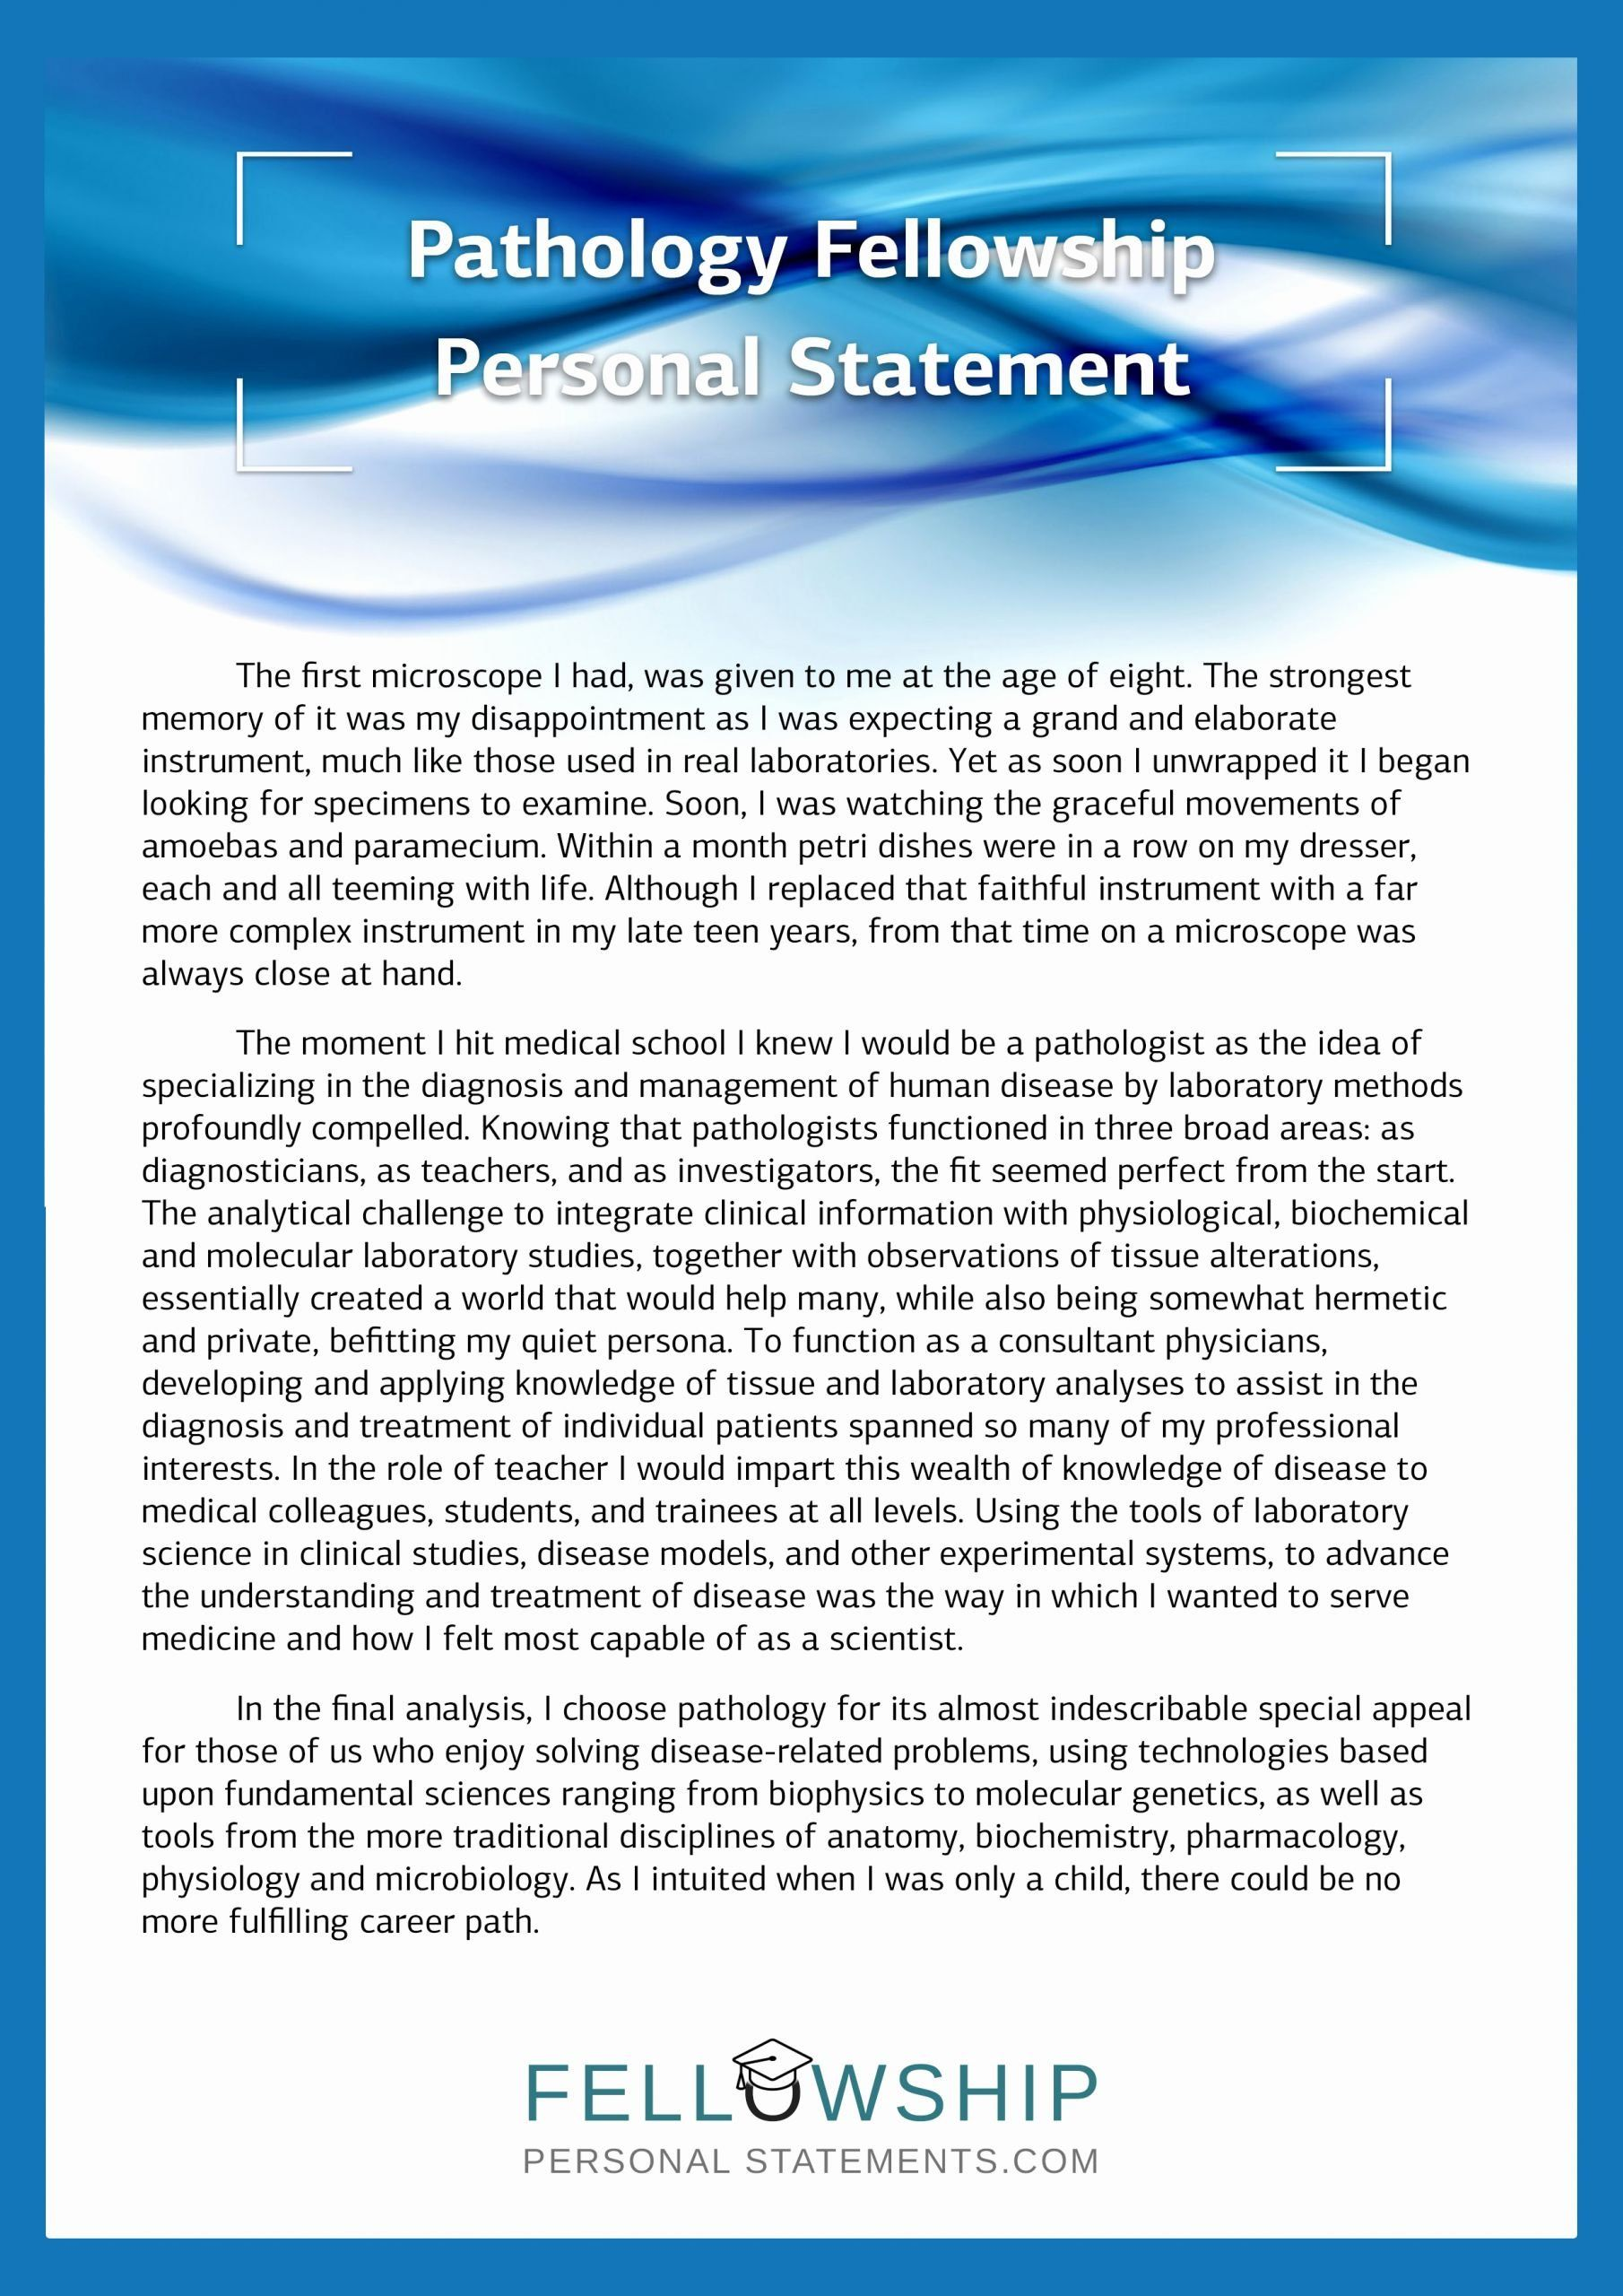 Personal Statement For Fellowship Sample Awesome Best Mission Person Cardiac Physiology